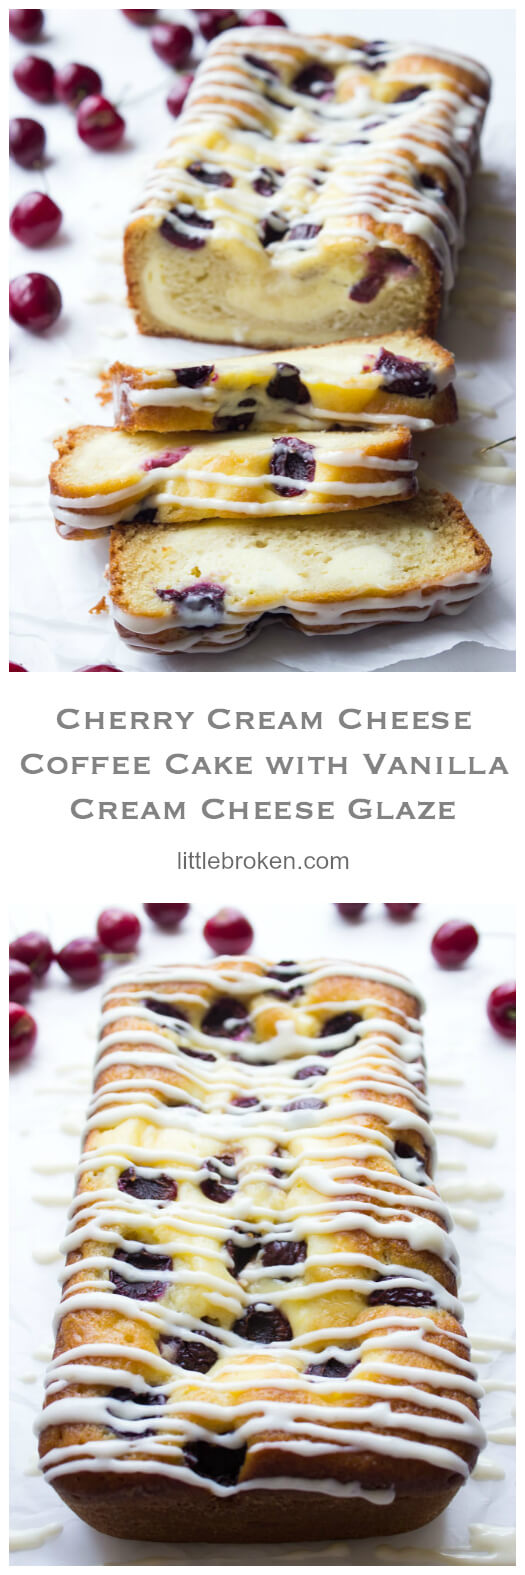 Super moist and flavorful 5 layer coffee cake, made with buttermilk cake layer, cream cheese filling, sweet fresh cherries, and the BEST cream cheese glaze | littlebroken.com @littlebroken